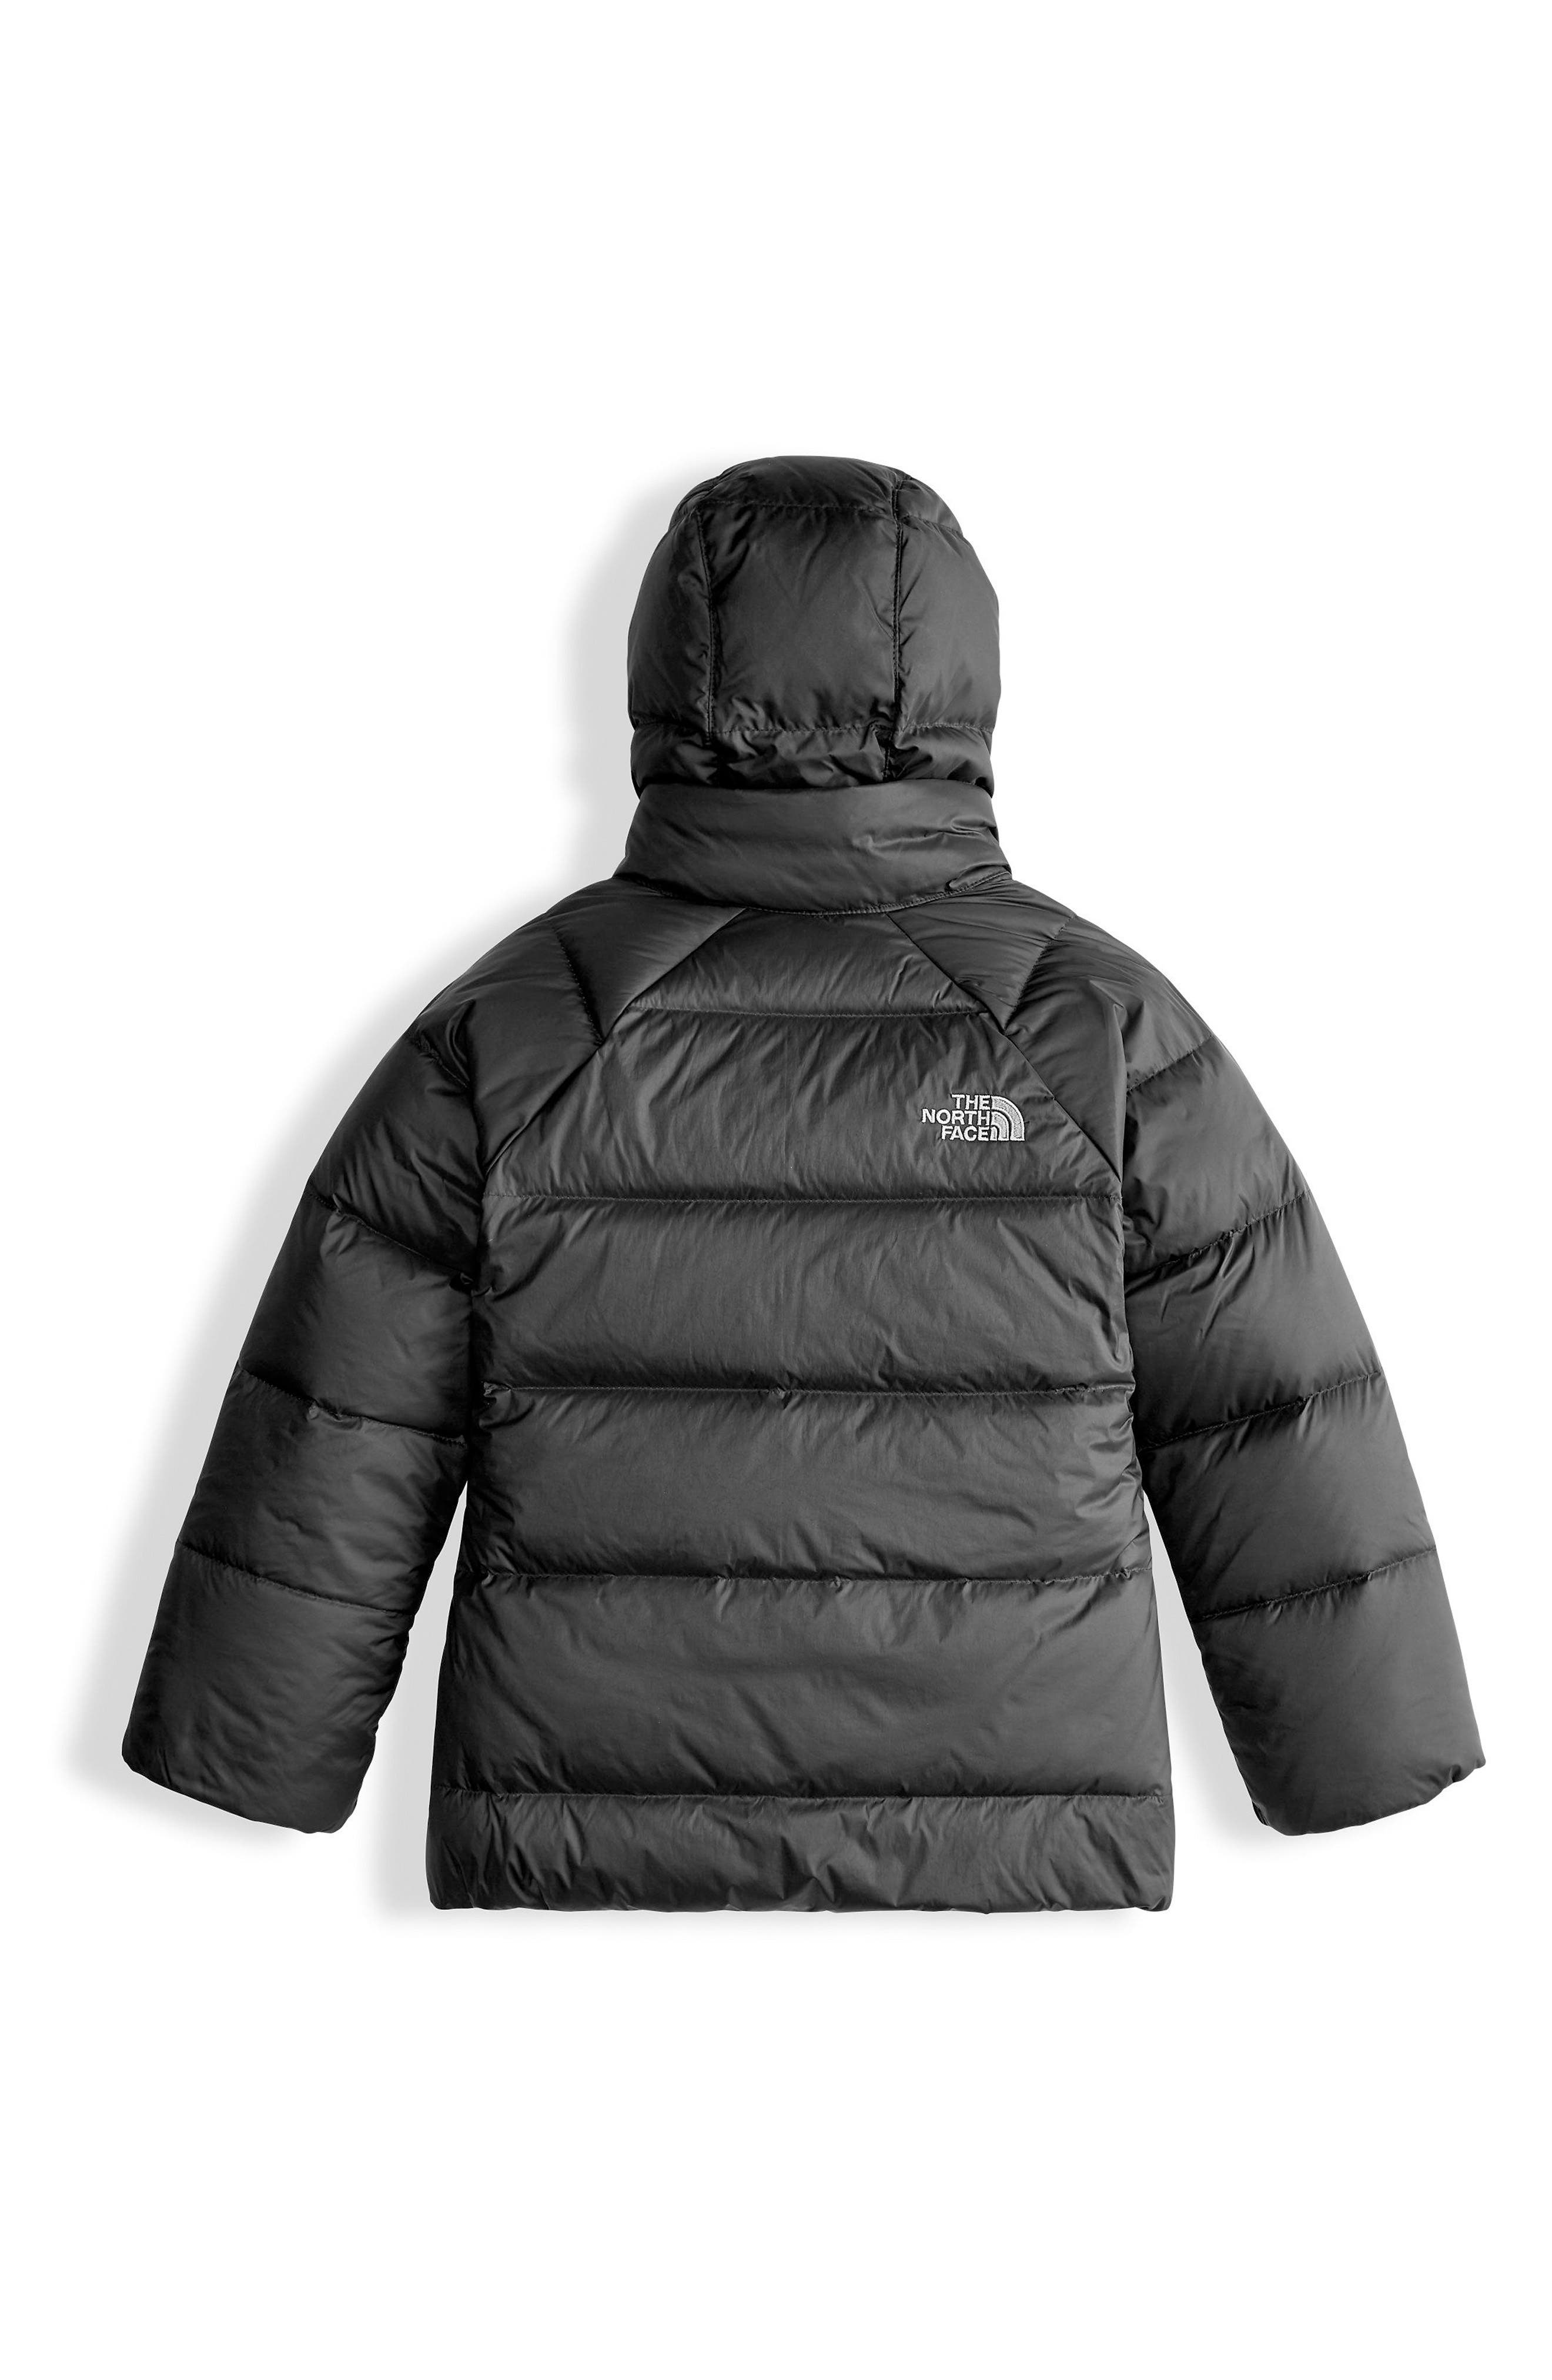 6b5ac34cf discount code for north face 3 in 1 jacket f4761 295c9